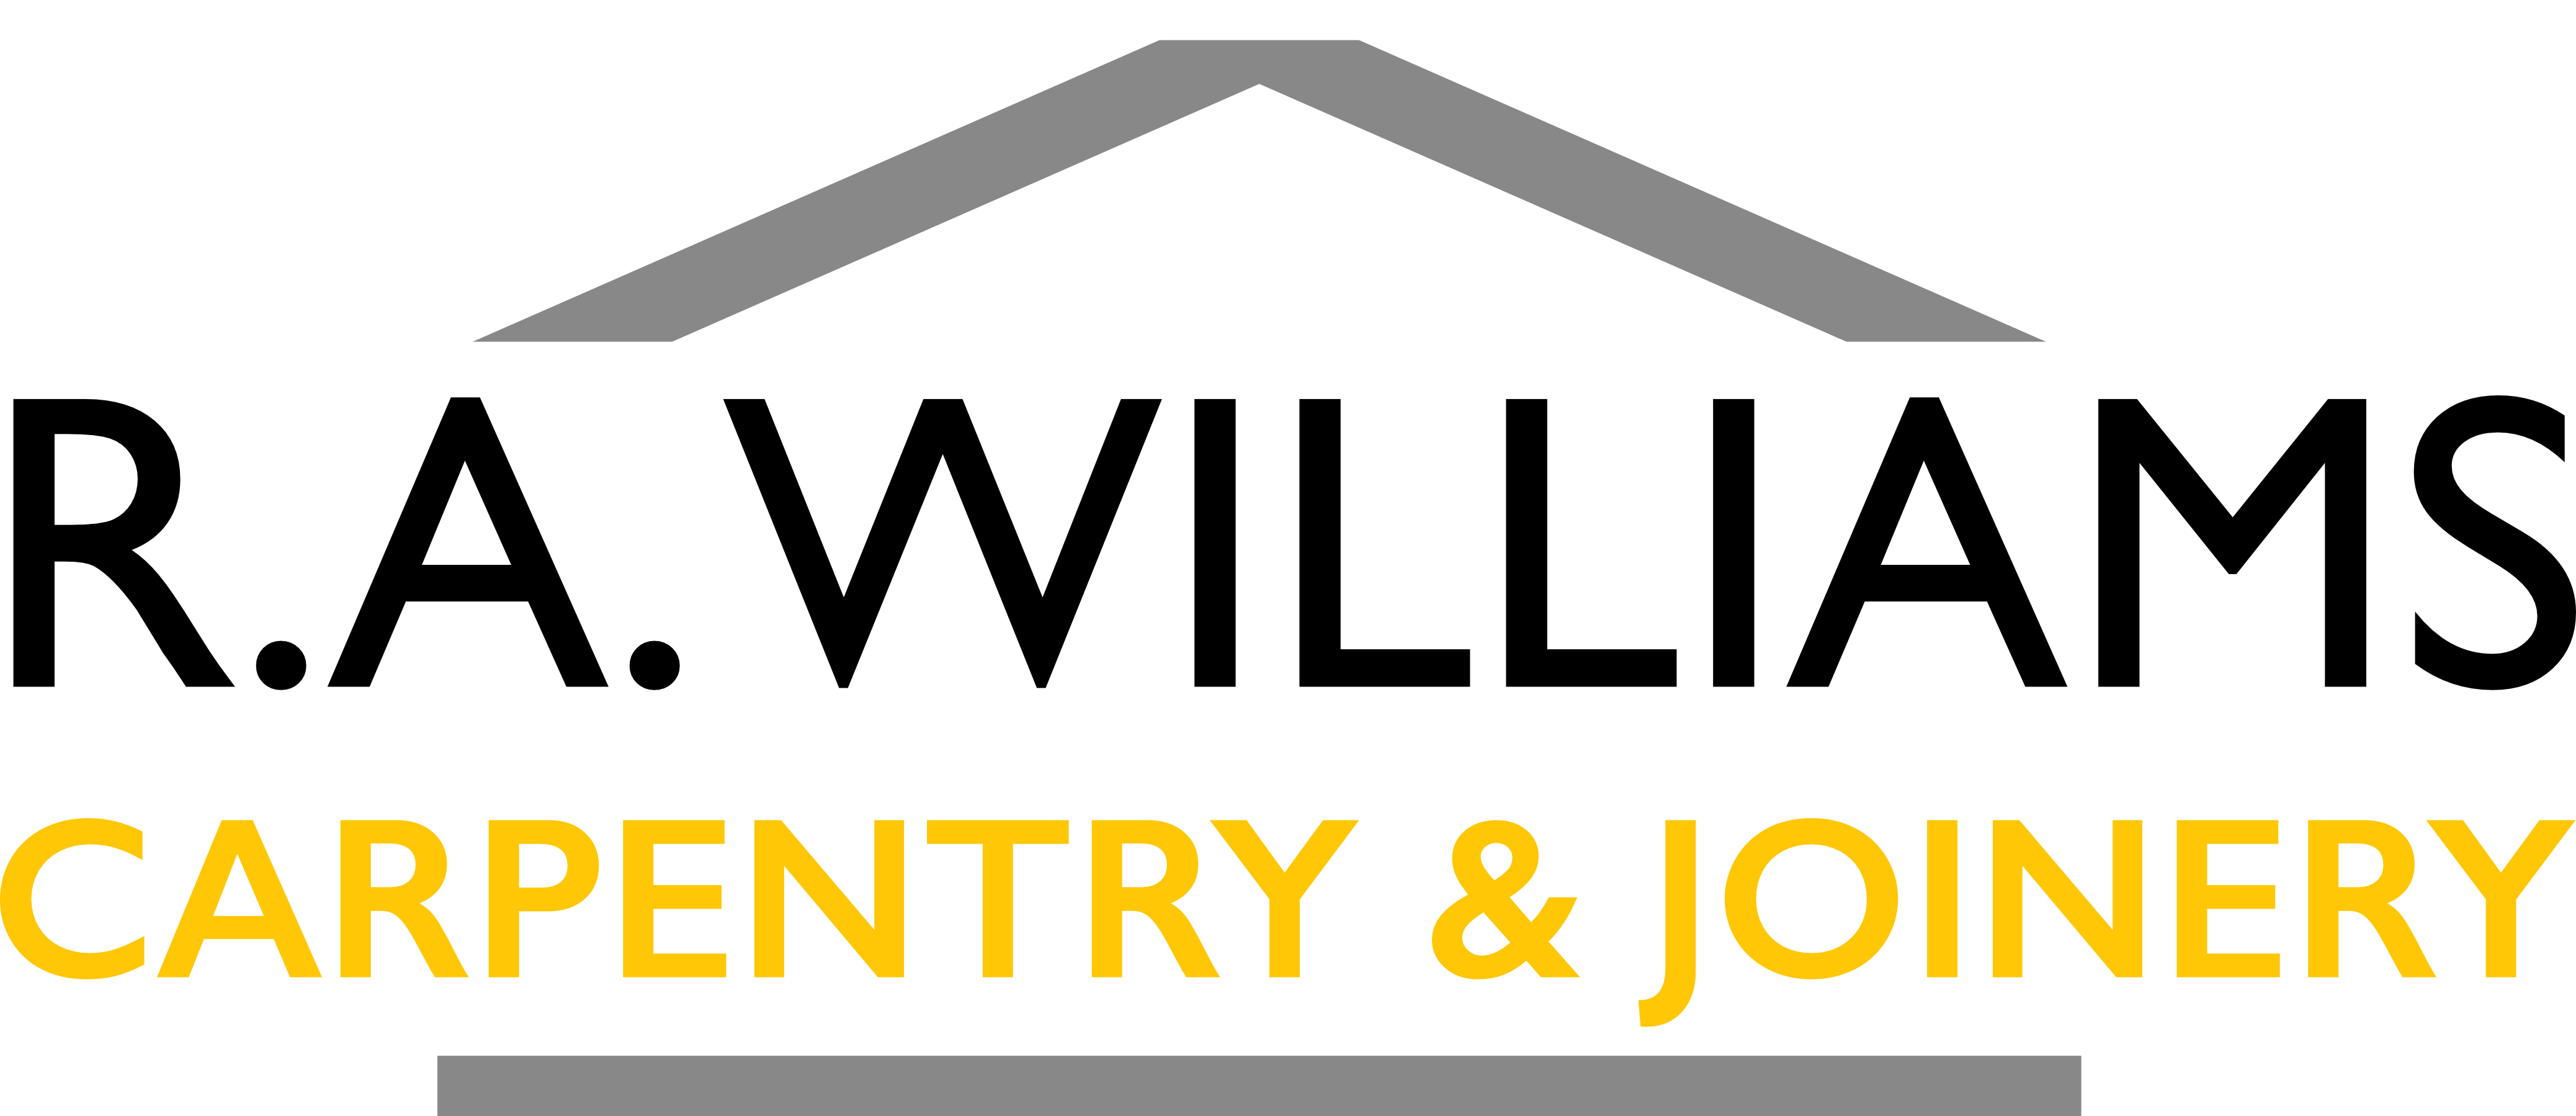 R. A. Williams Carpentry & Joinery